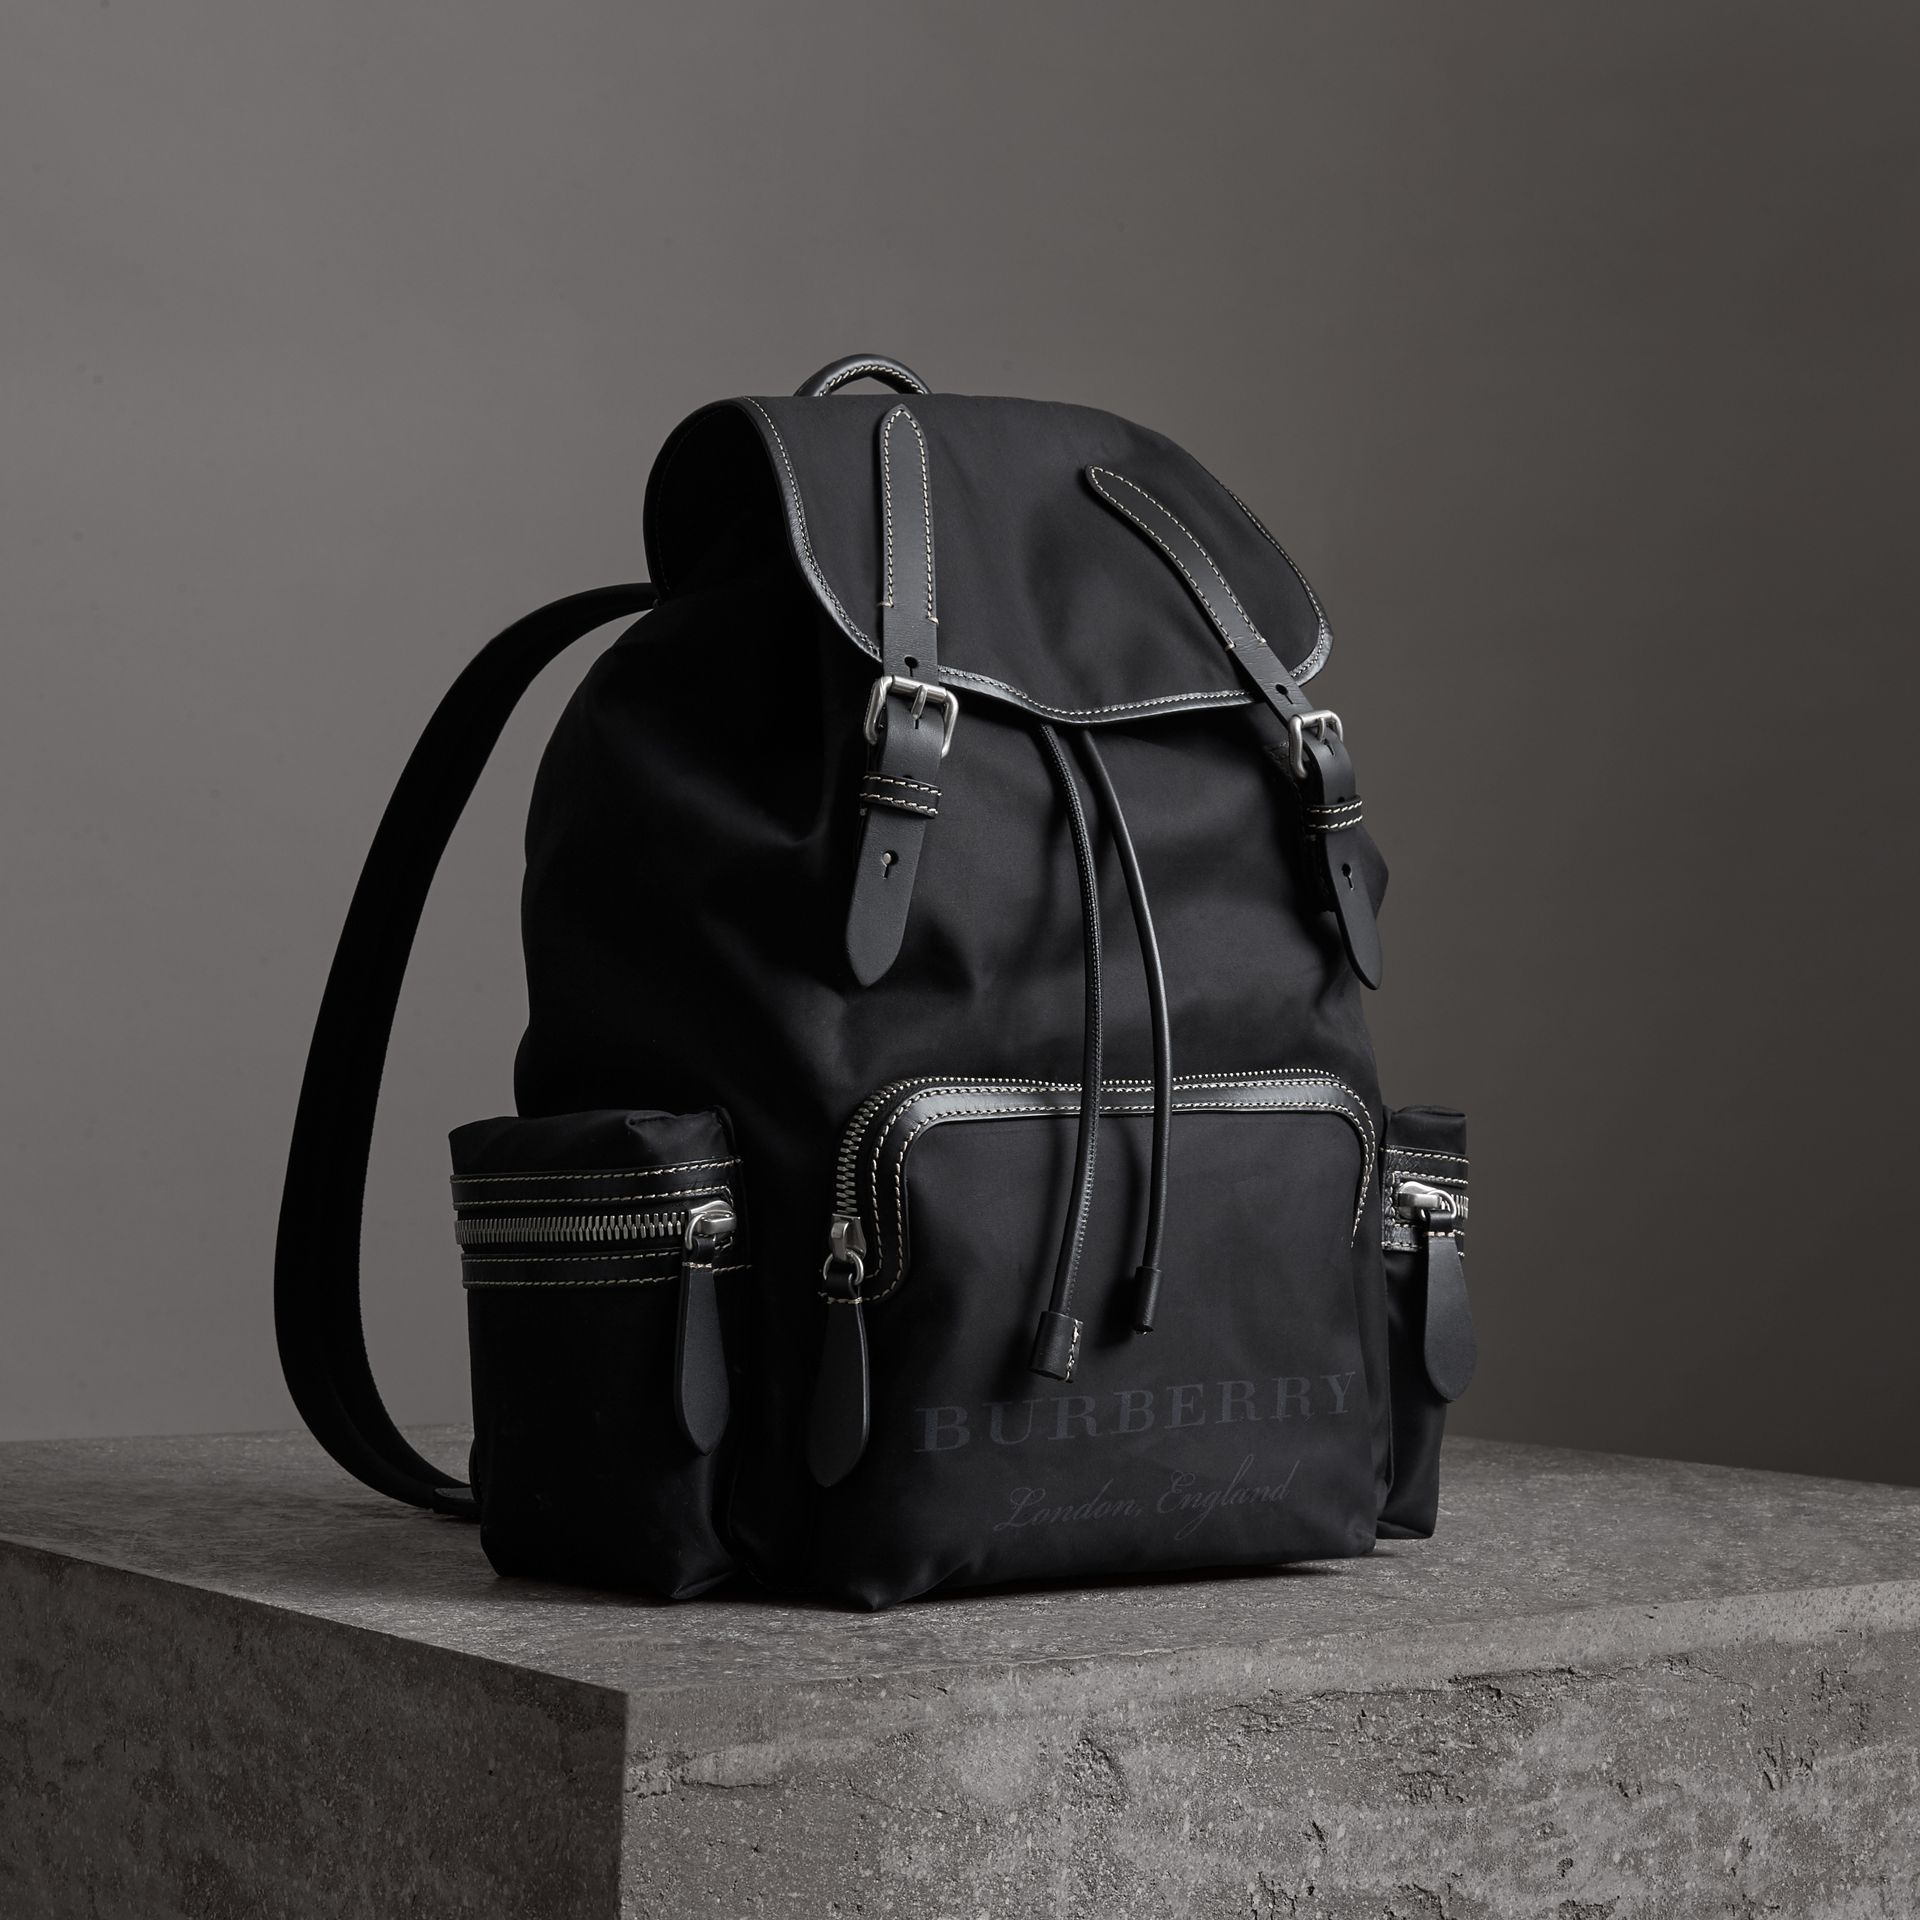 e9ac3dc1c09a BURBERRY The Large Rucksack in Cotton Canvas.  burberry  bags  leather   lining  canvas  backpacks  cotton